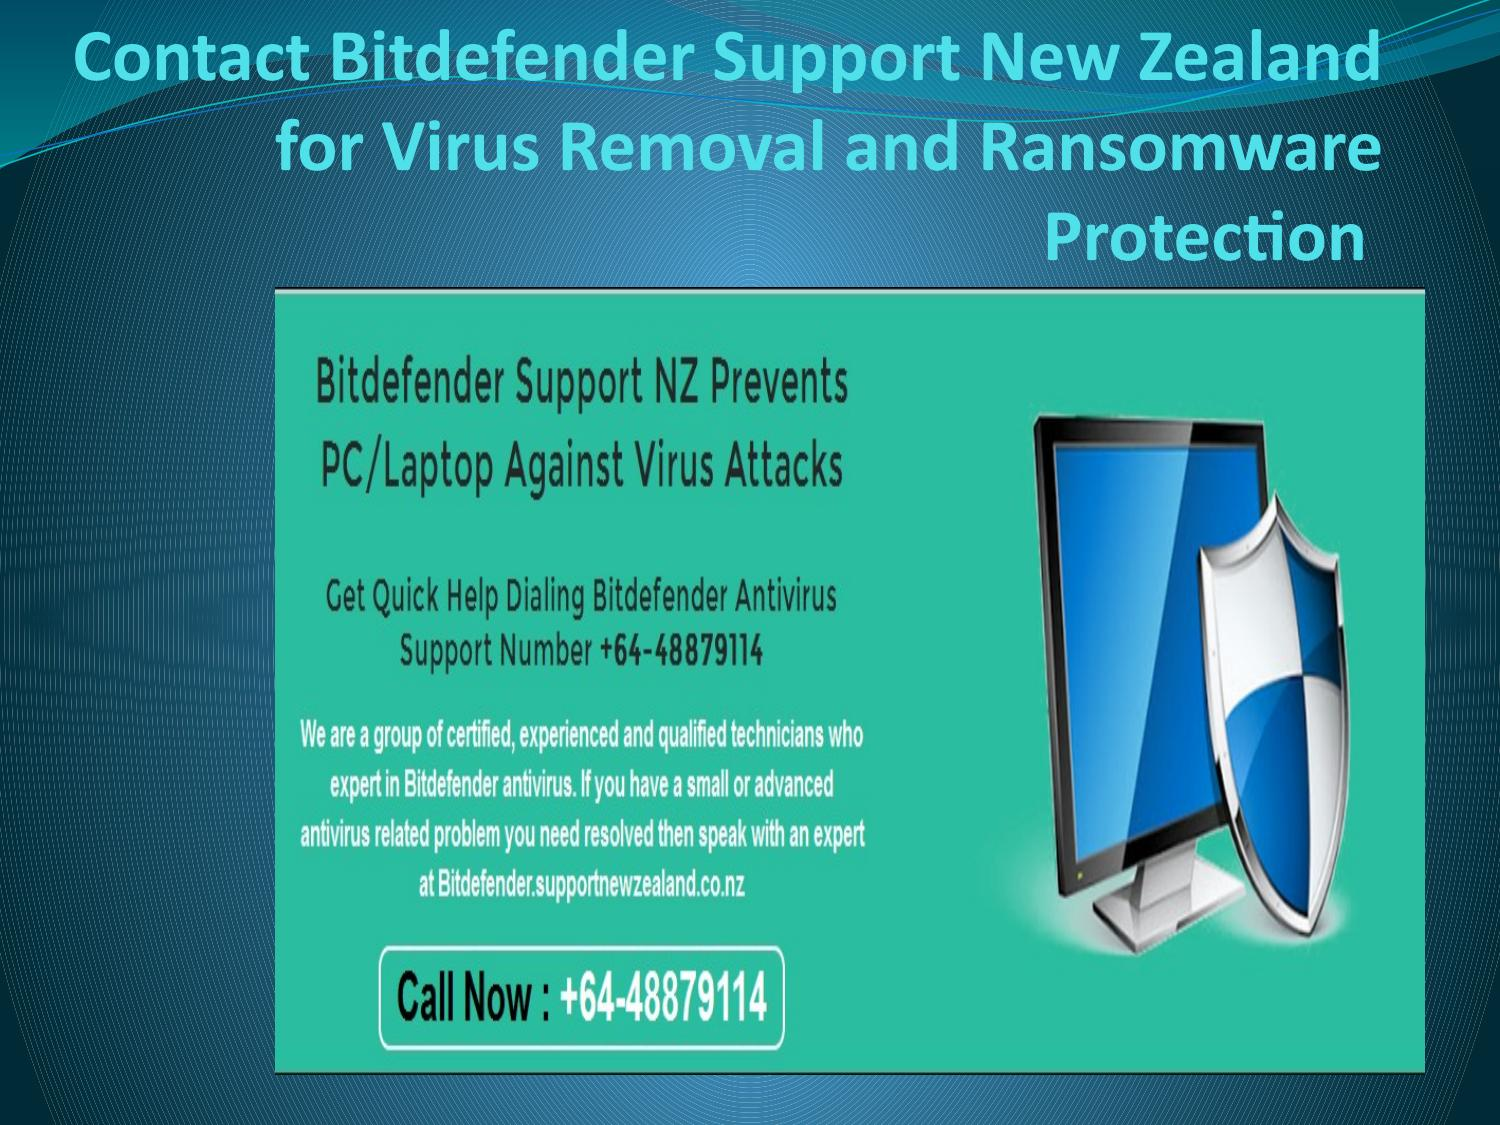 Contact bitdefender support new zealand for virus removal